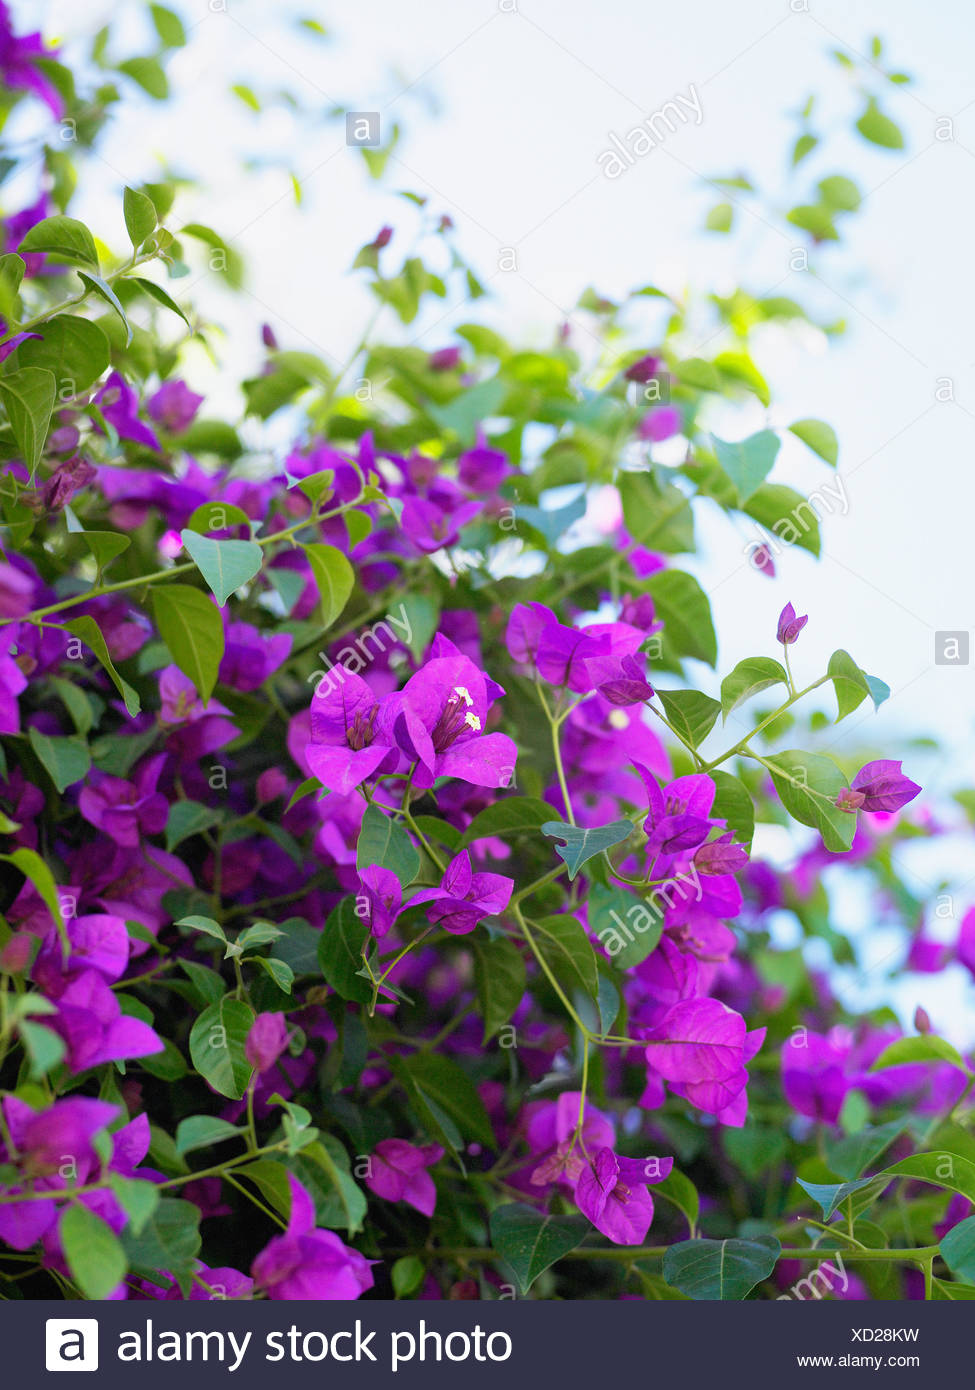 Clinging Vine With Purple Flowers South Africa Stock Photo